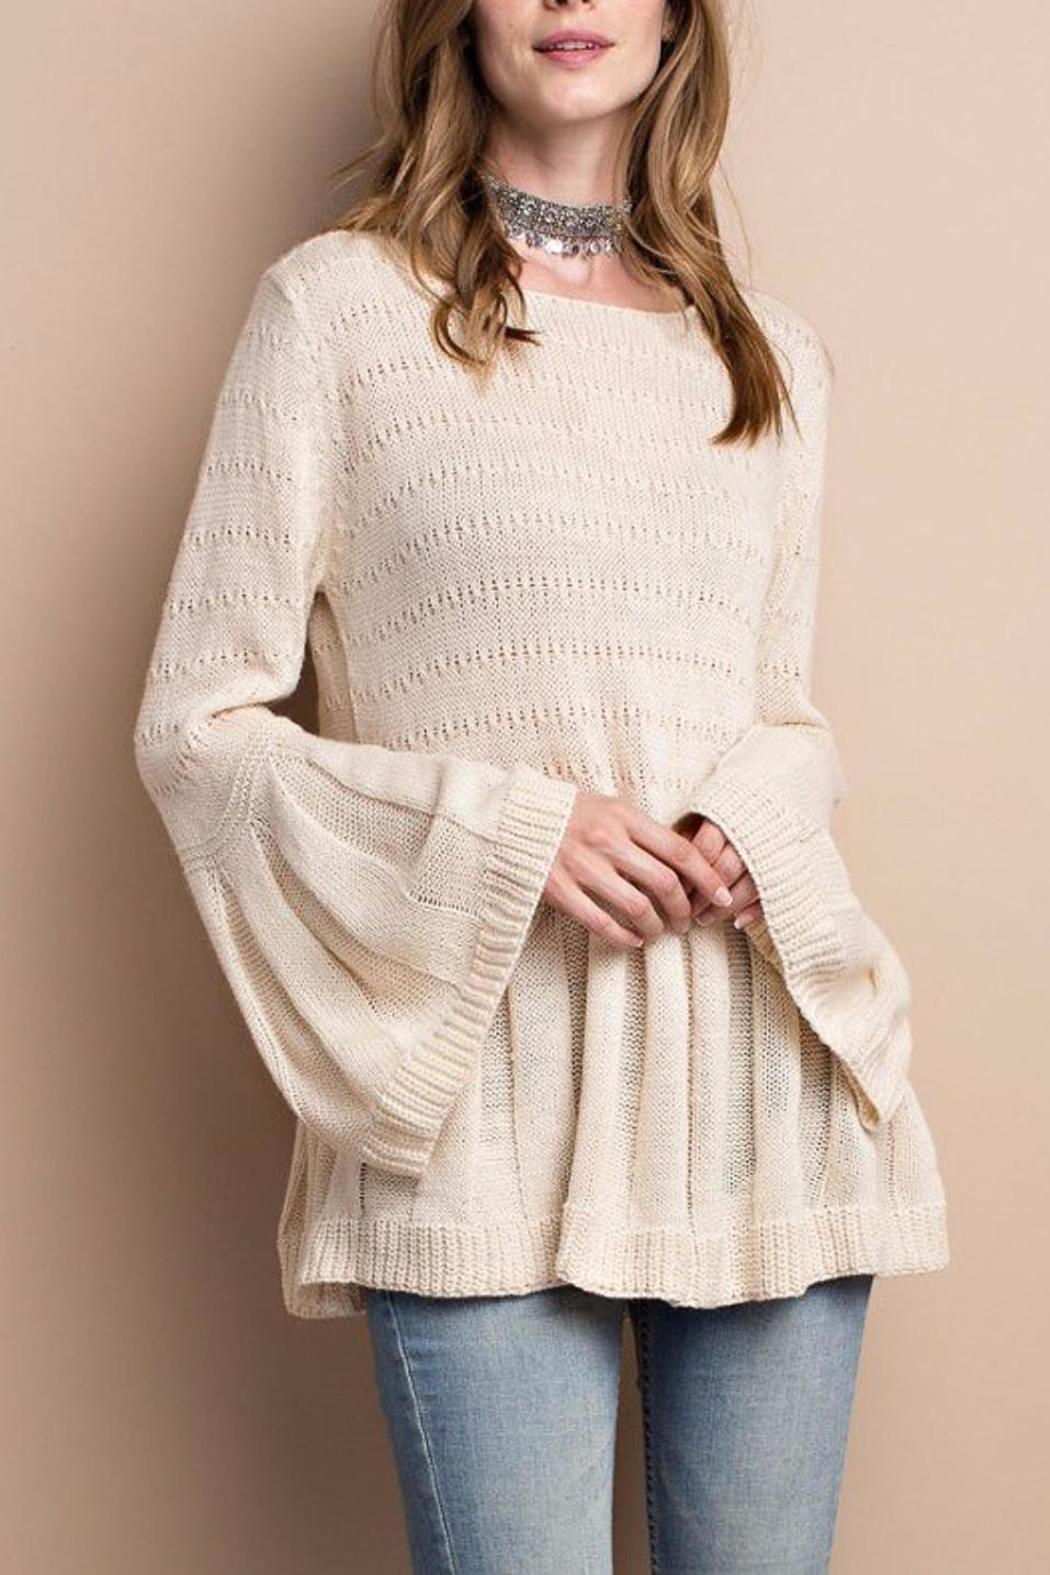 People Outfitter Keep Bell Sweater - Main Image